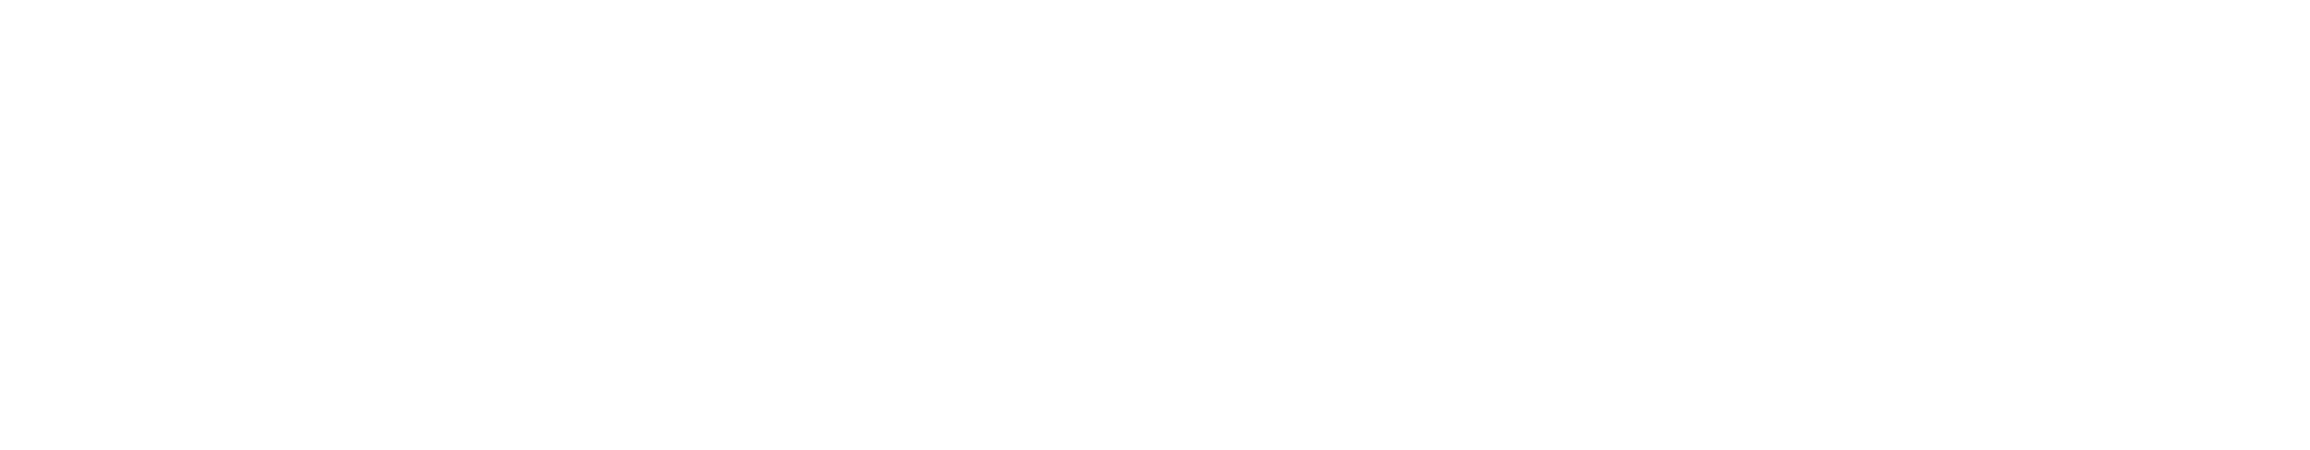 Apartment Association of Greater Orland, New jersey Apartment Association & Pennsylvania Apartment Association